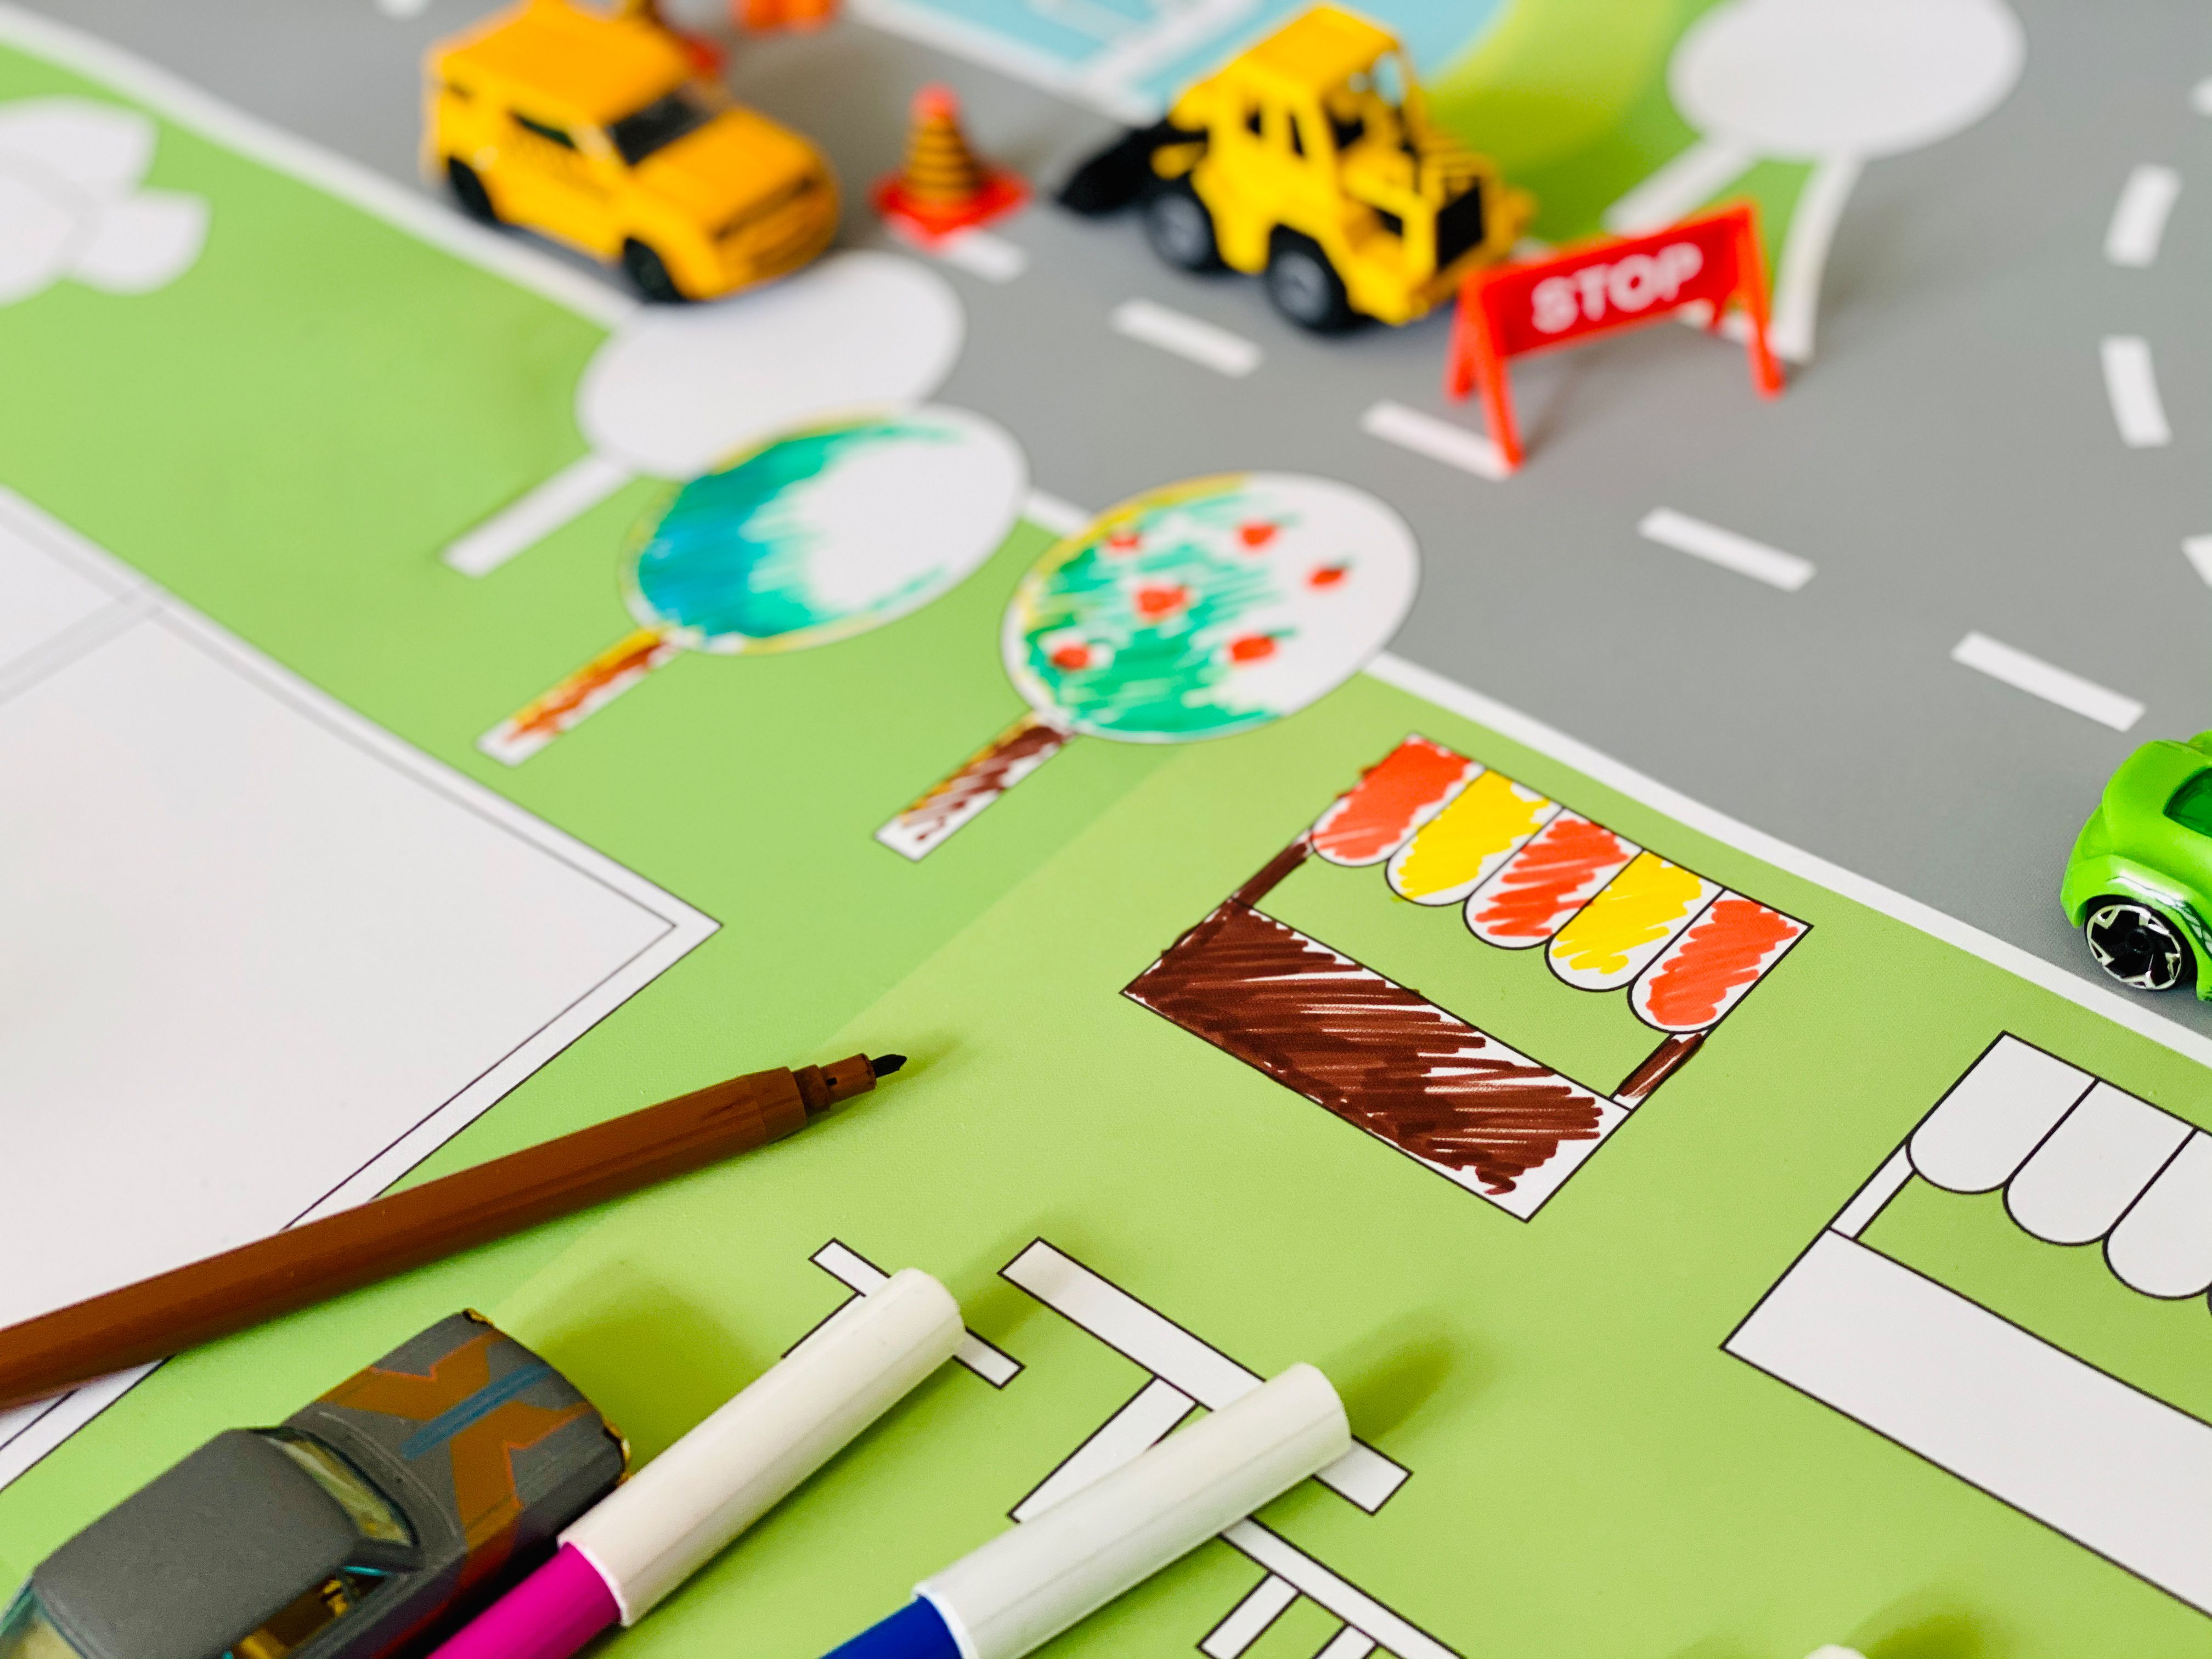 Play Carpet For Coloring Motif Race Track Car Carpet For Painting And Playing Fun Made Of High Quality Tear Resistant Fabric 170 X 95 Cm In 2020 Car Carpet Long Painting Fun